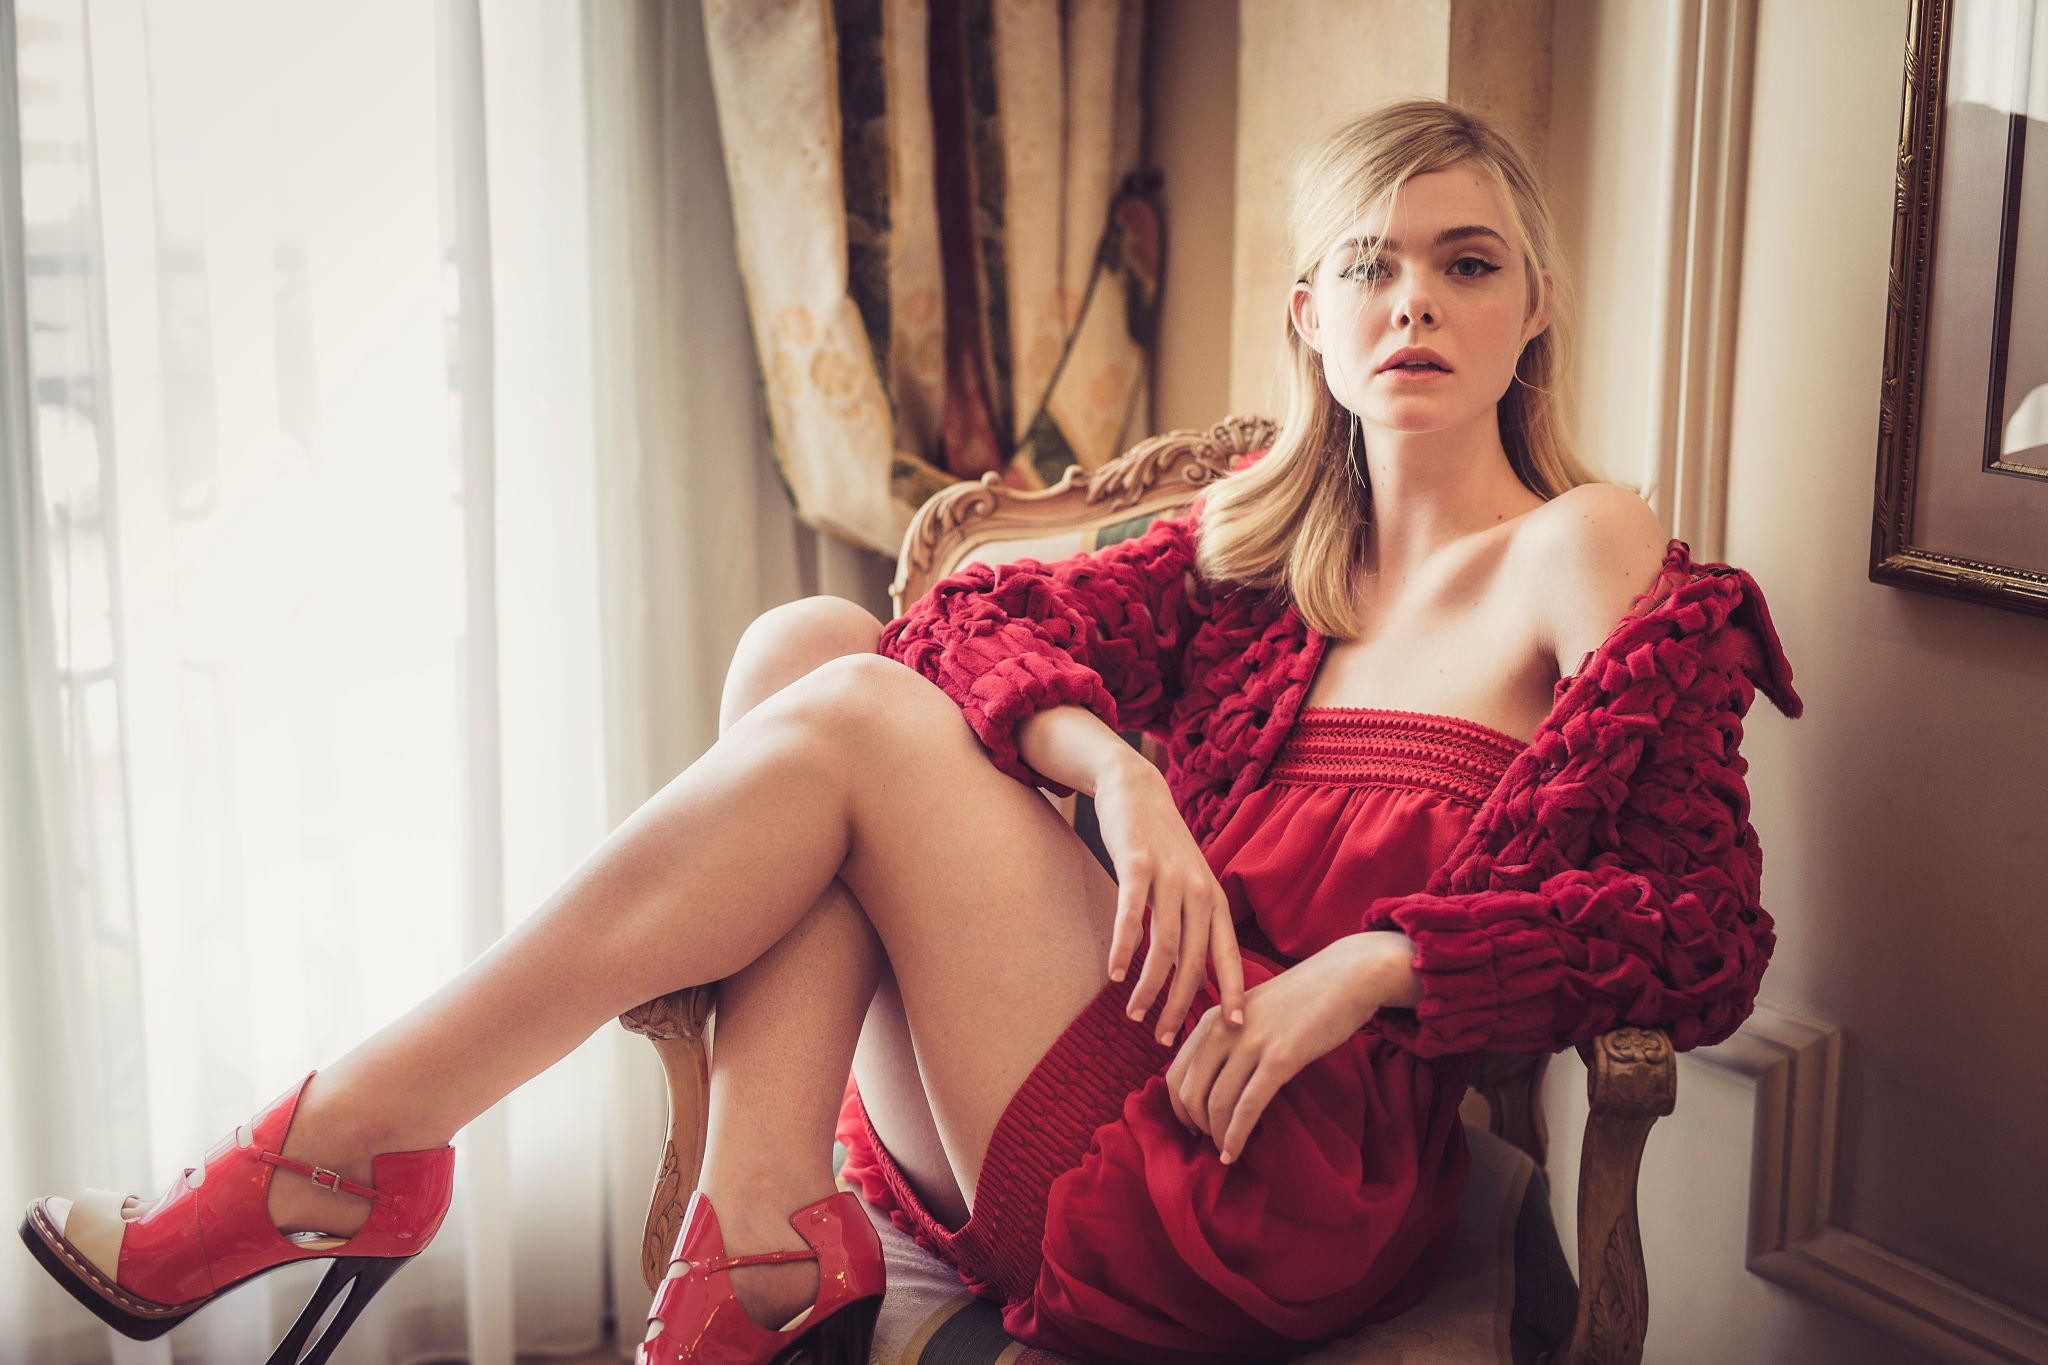 Elle Fanning-Led Catherine the Great Series Gets